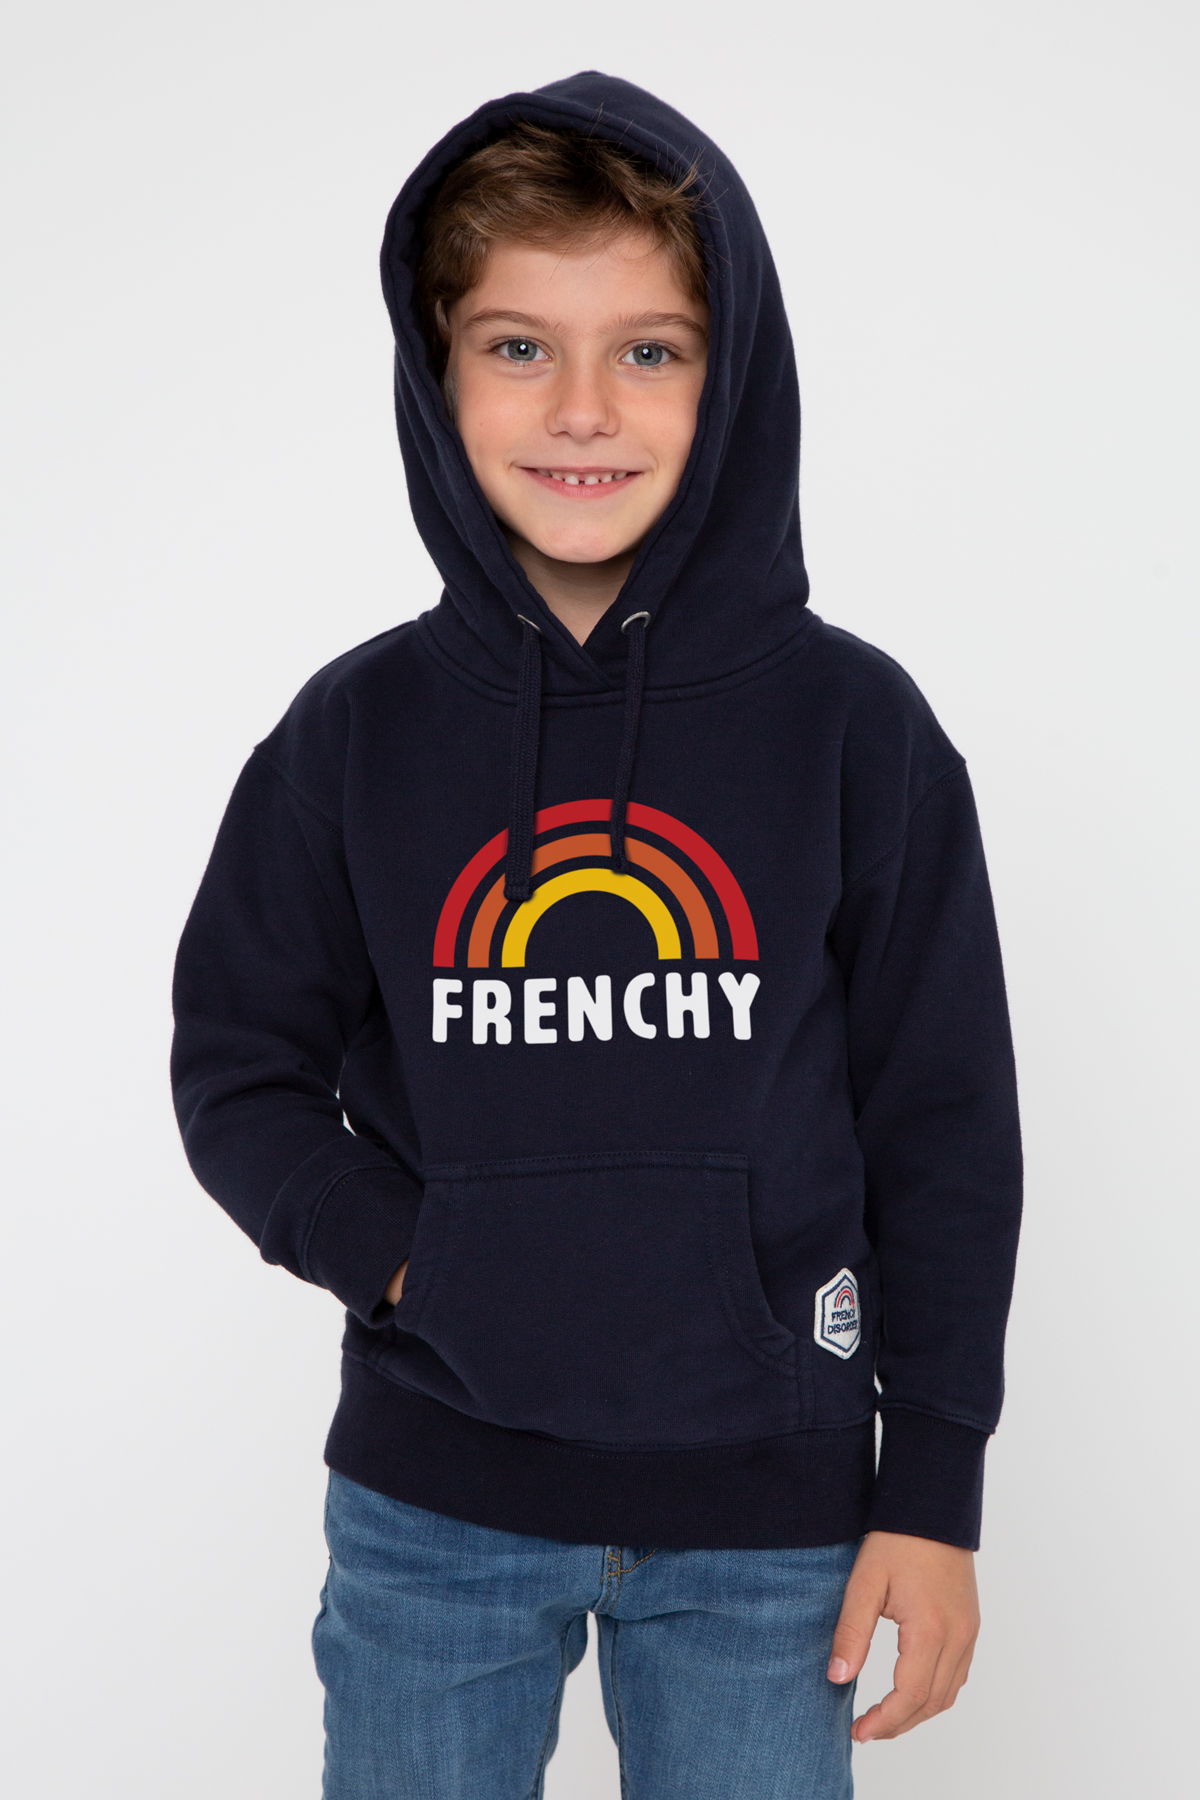 Photo de SWEAT À CAPUCHE Hoodie FRENCHY chez French Disorder